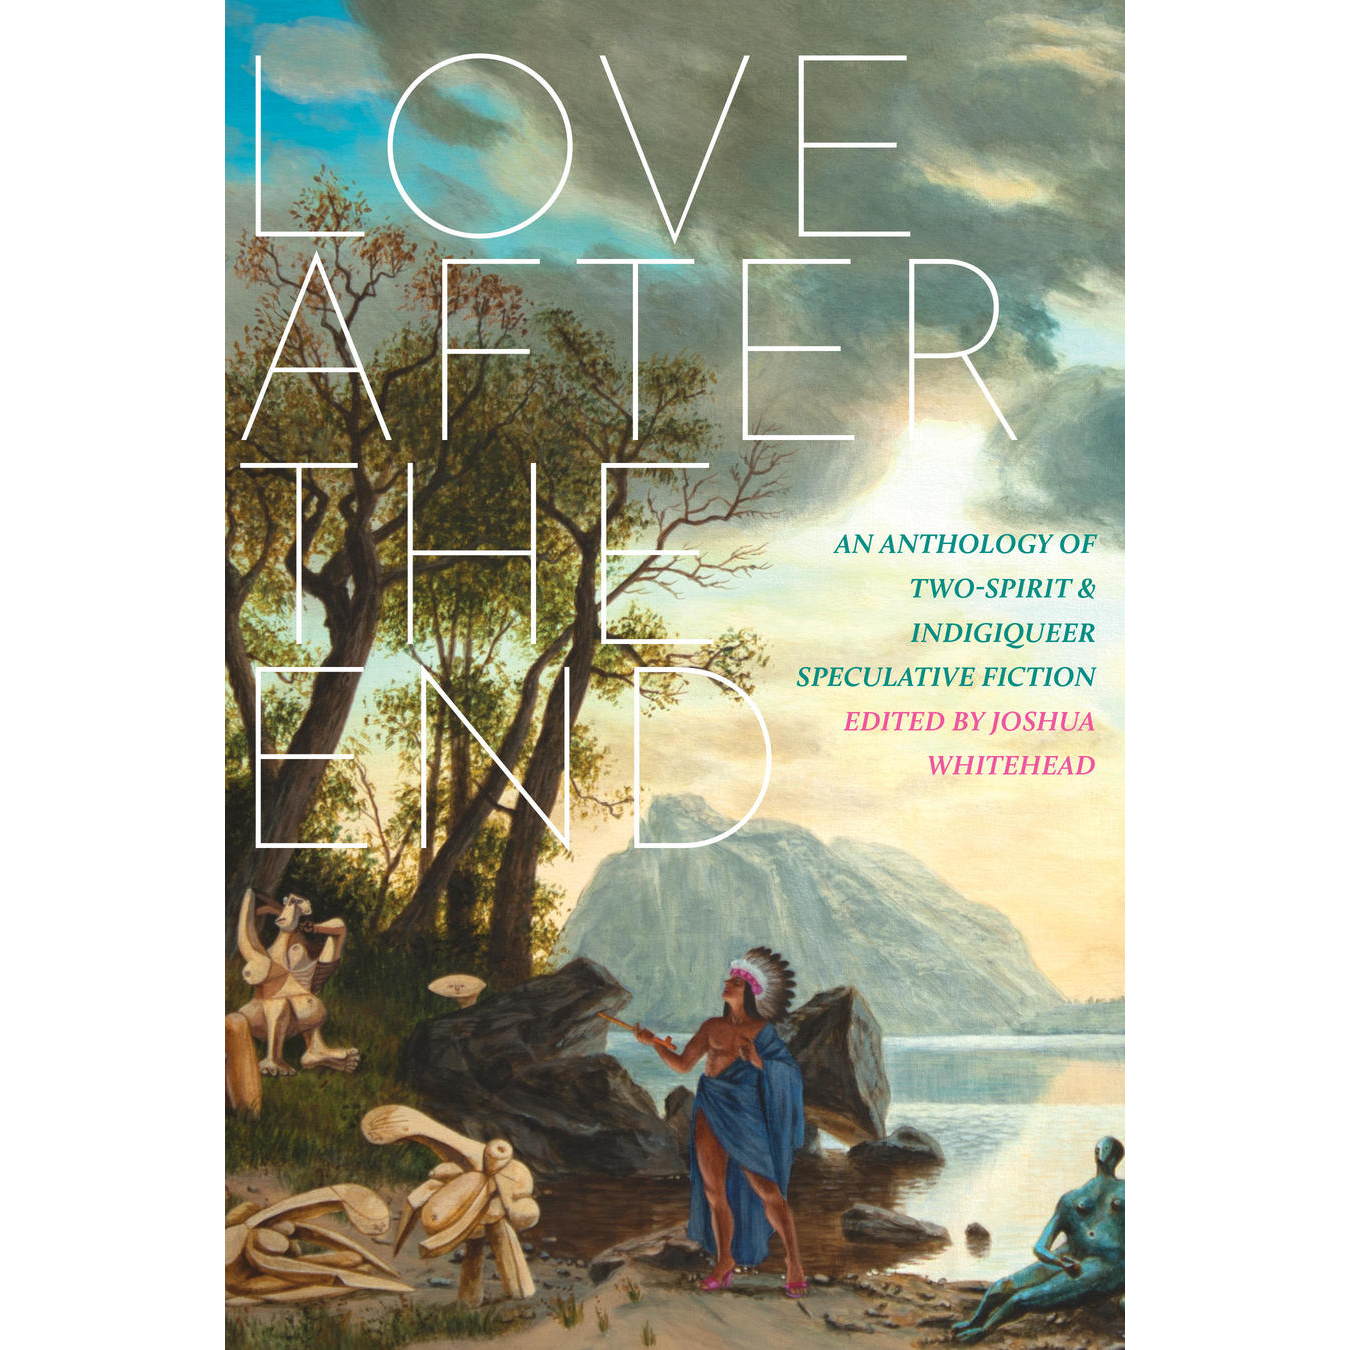 Book Review: _Love After the End_ ed. Joshua Whitehead